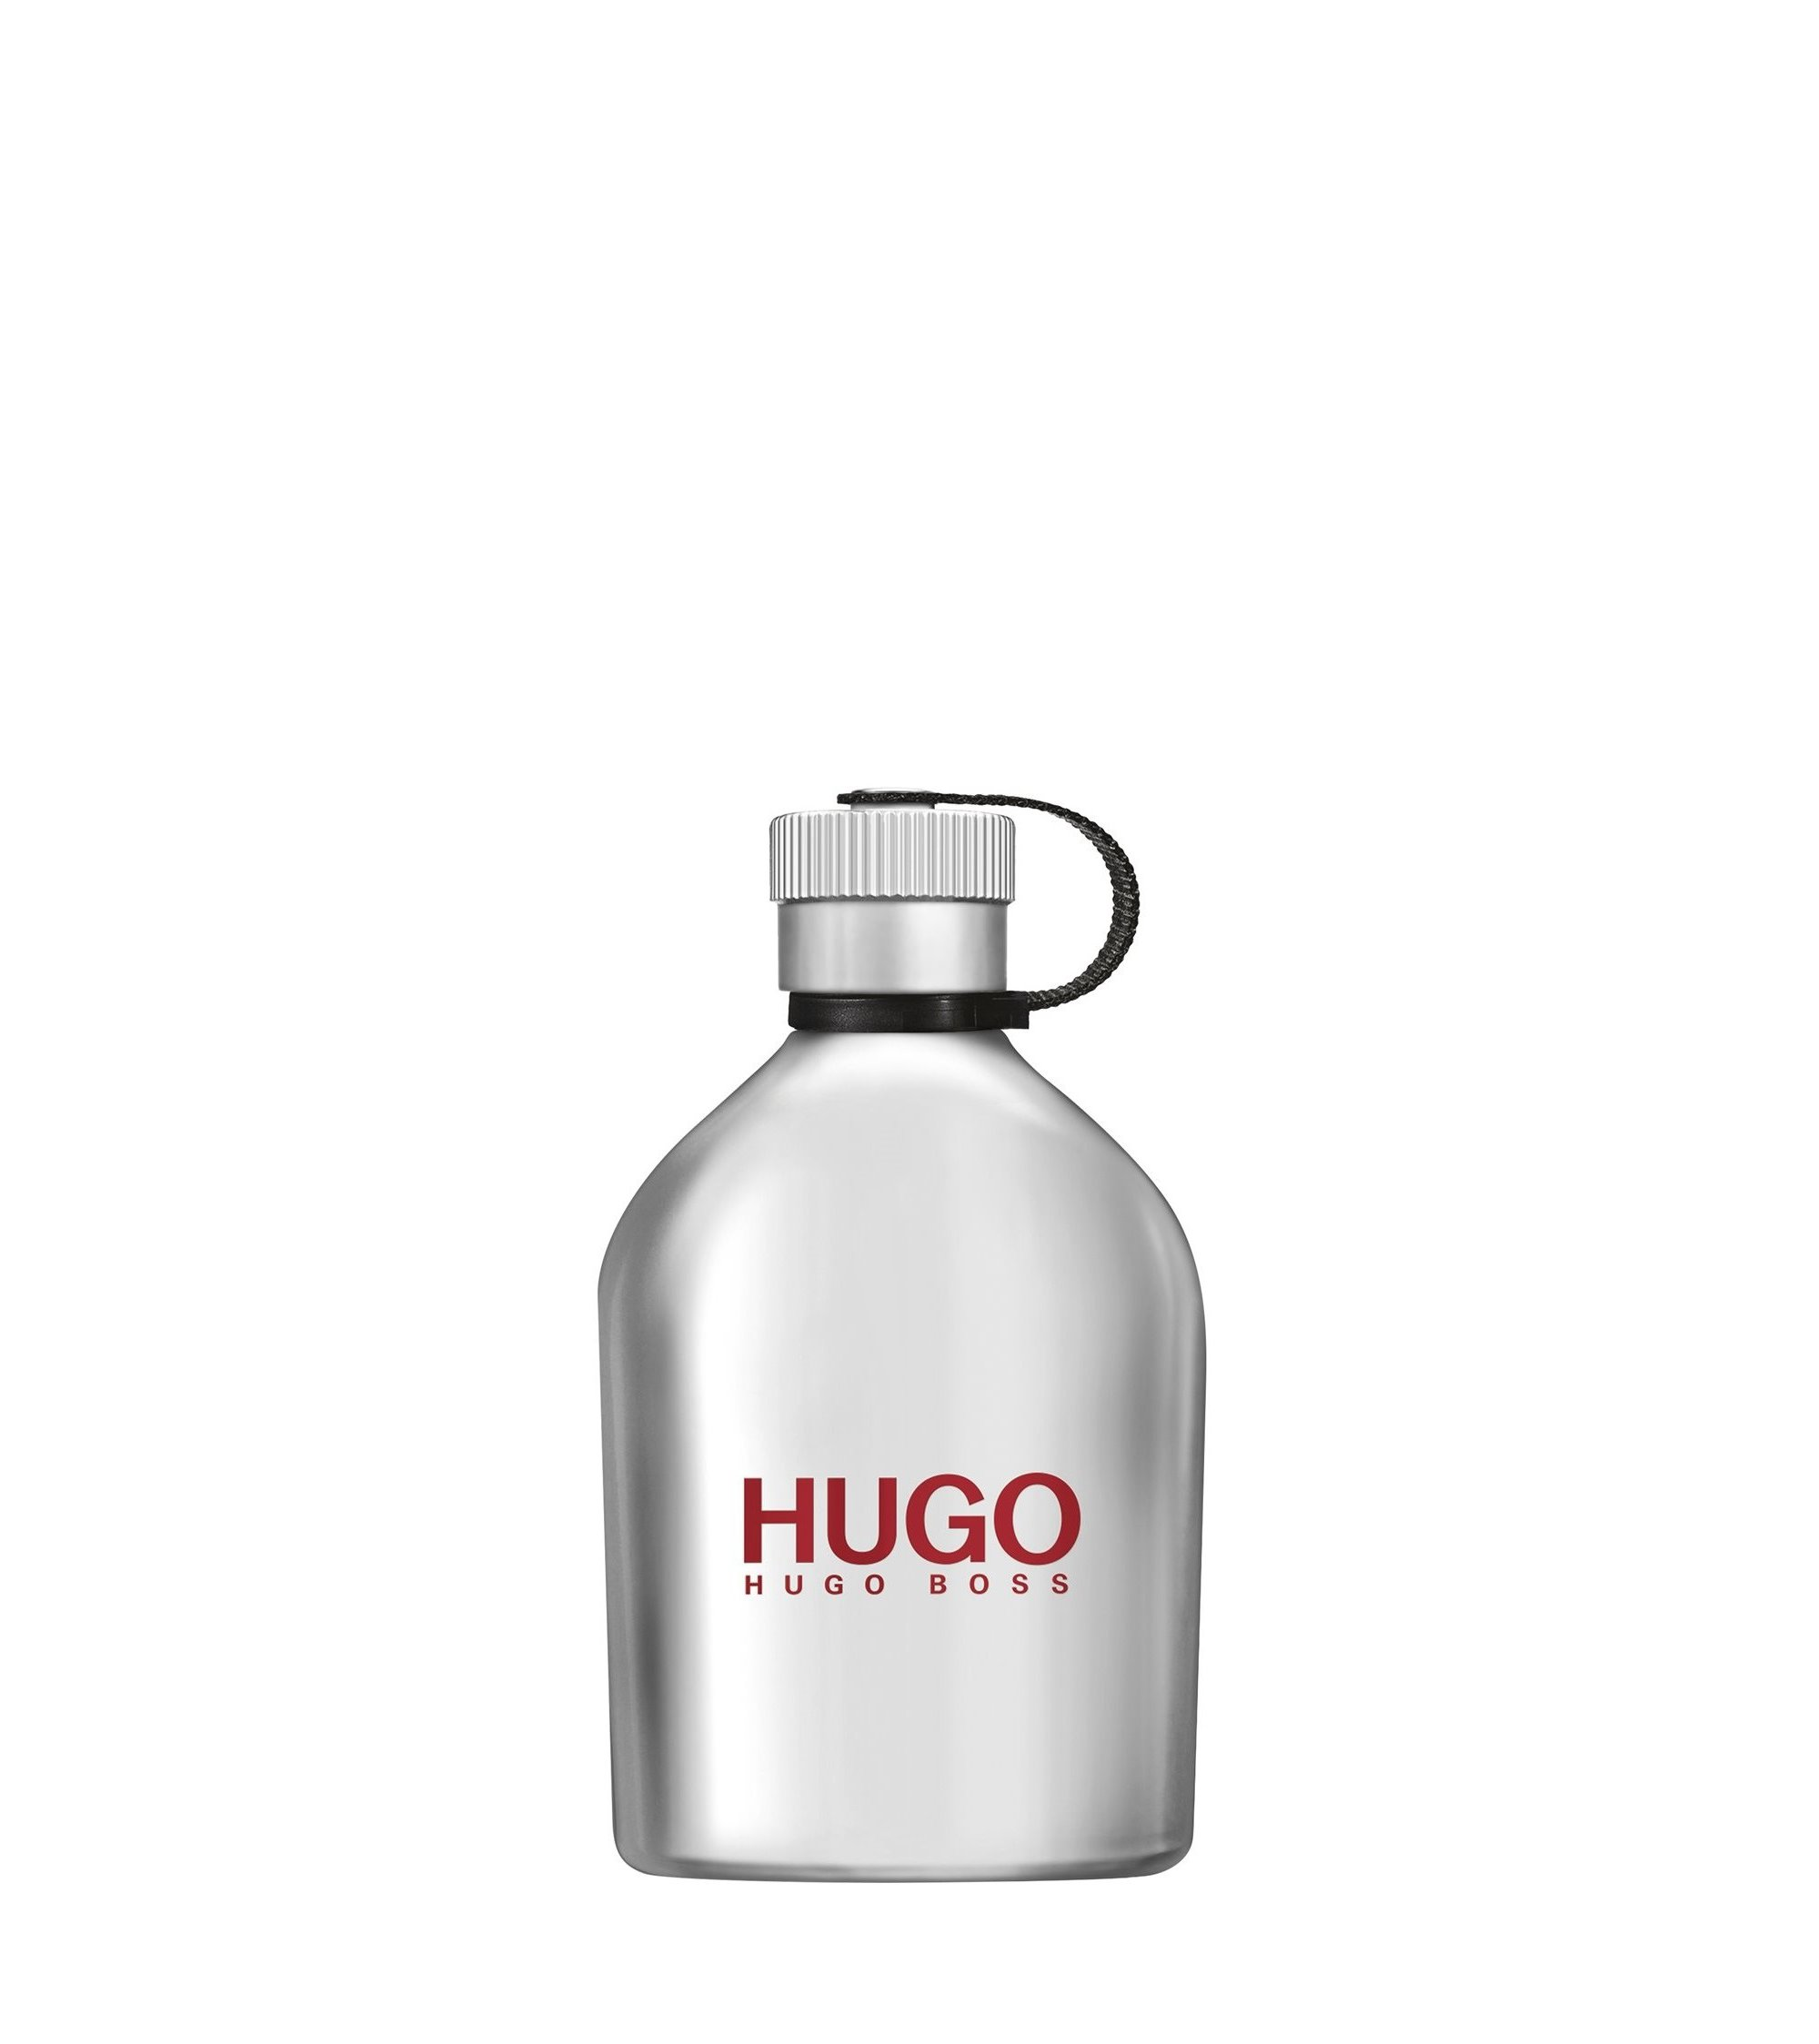 Eau de Toilette HUGO Iced, 200 ml, Assorted-Pre-Pack